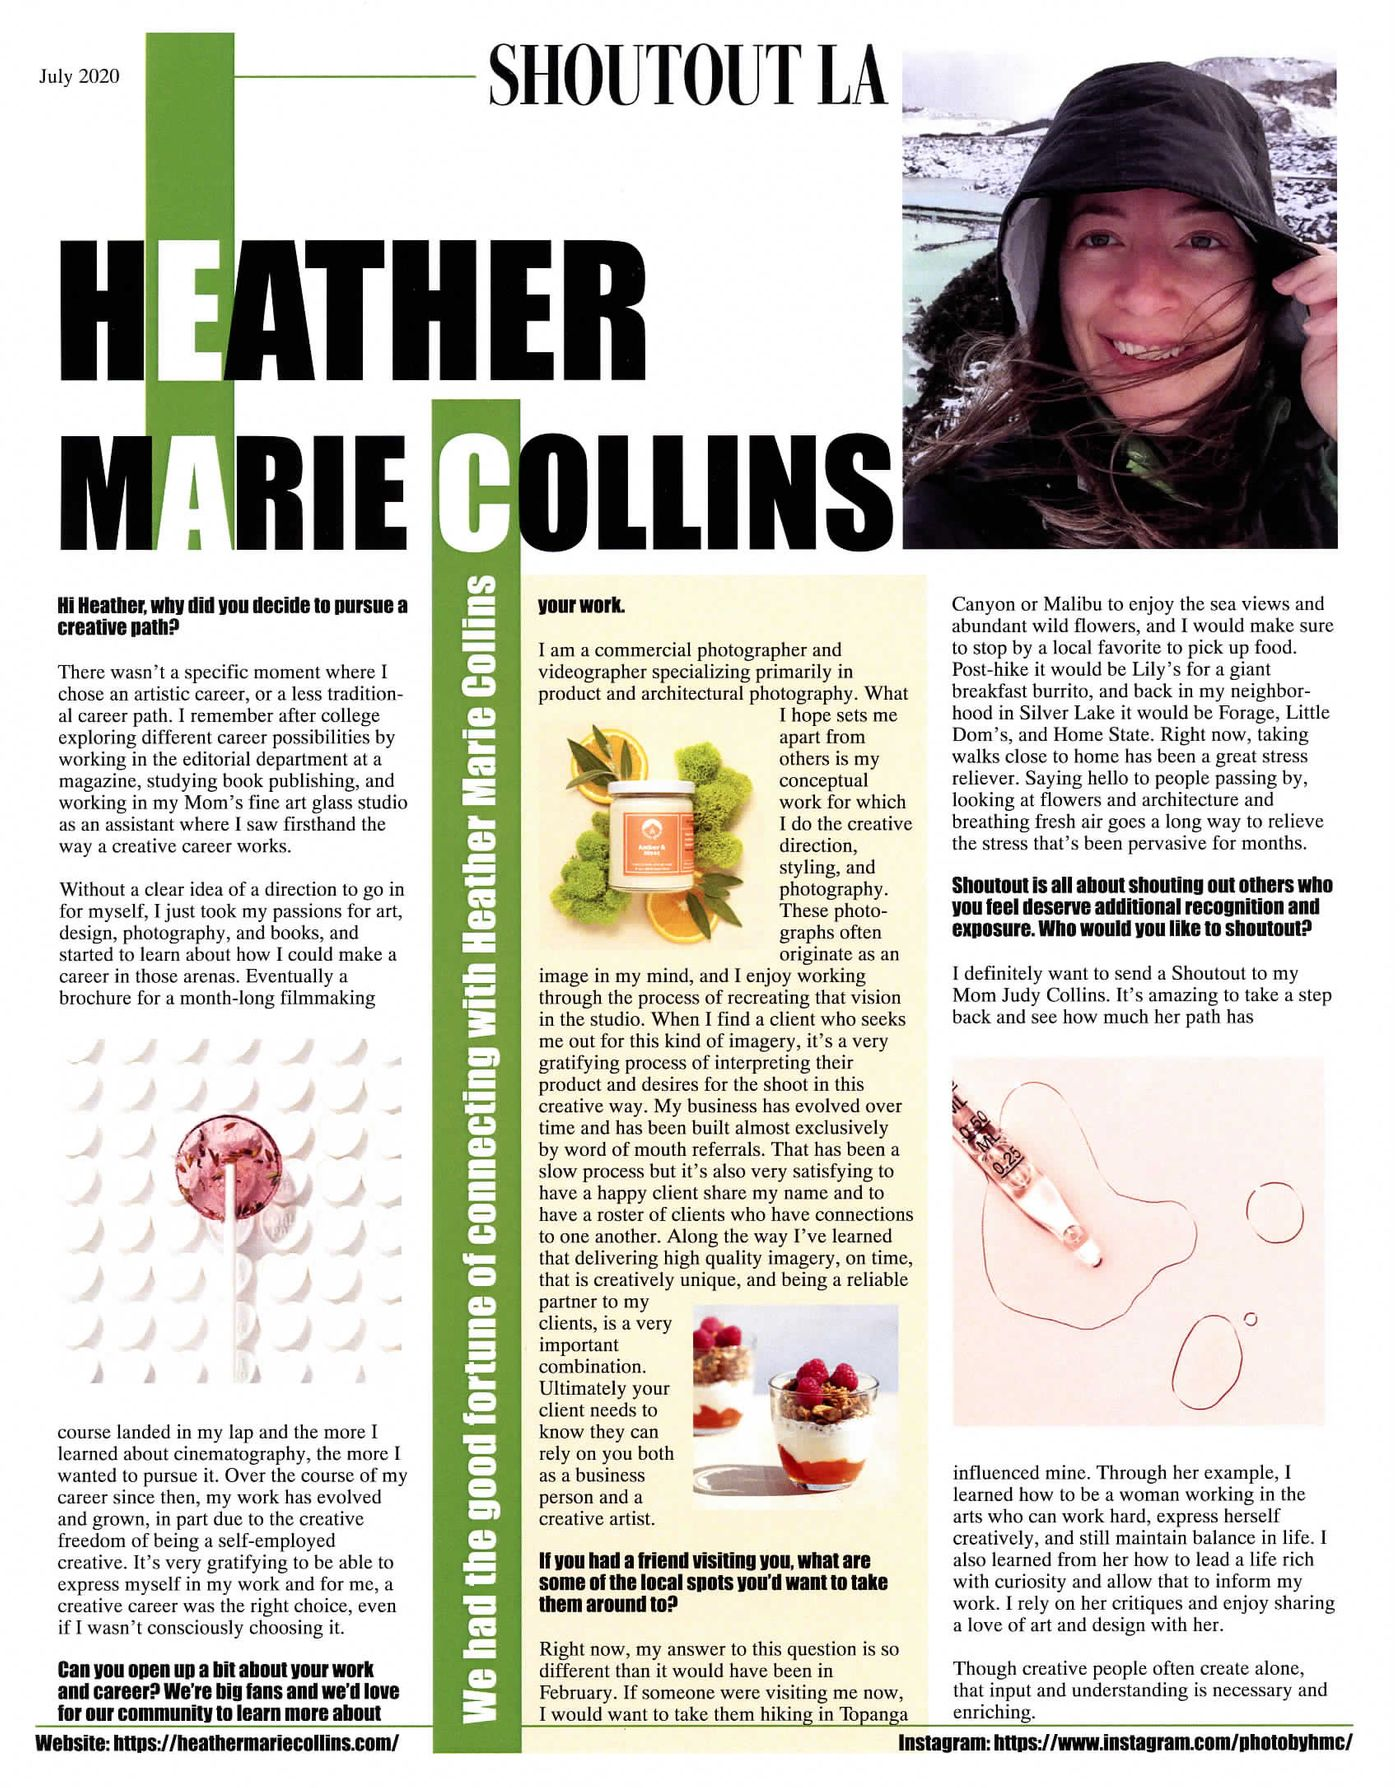 Collins_Heather Voyage LA Article 2020_08.jpg